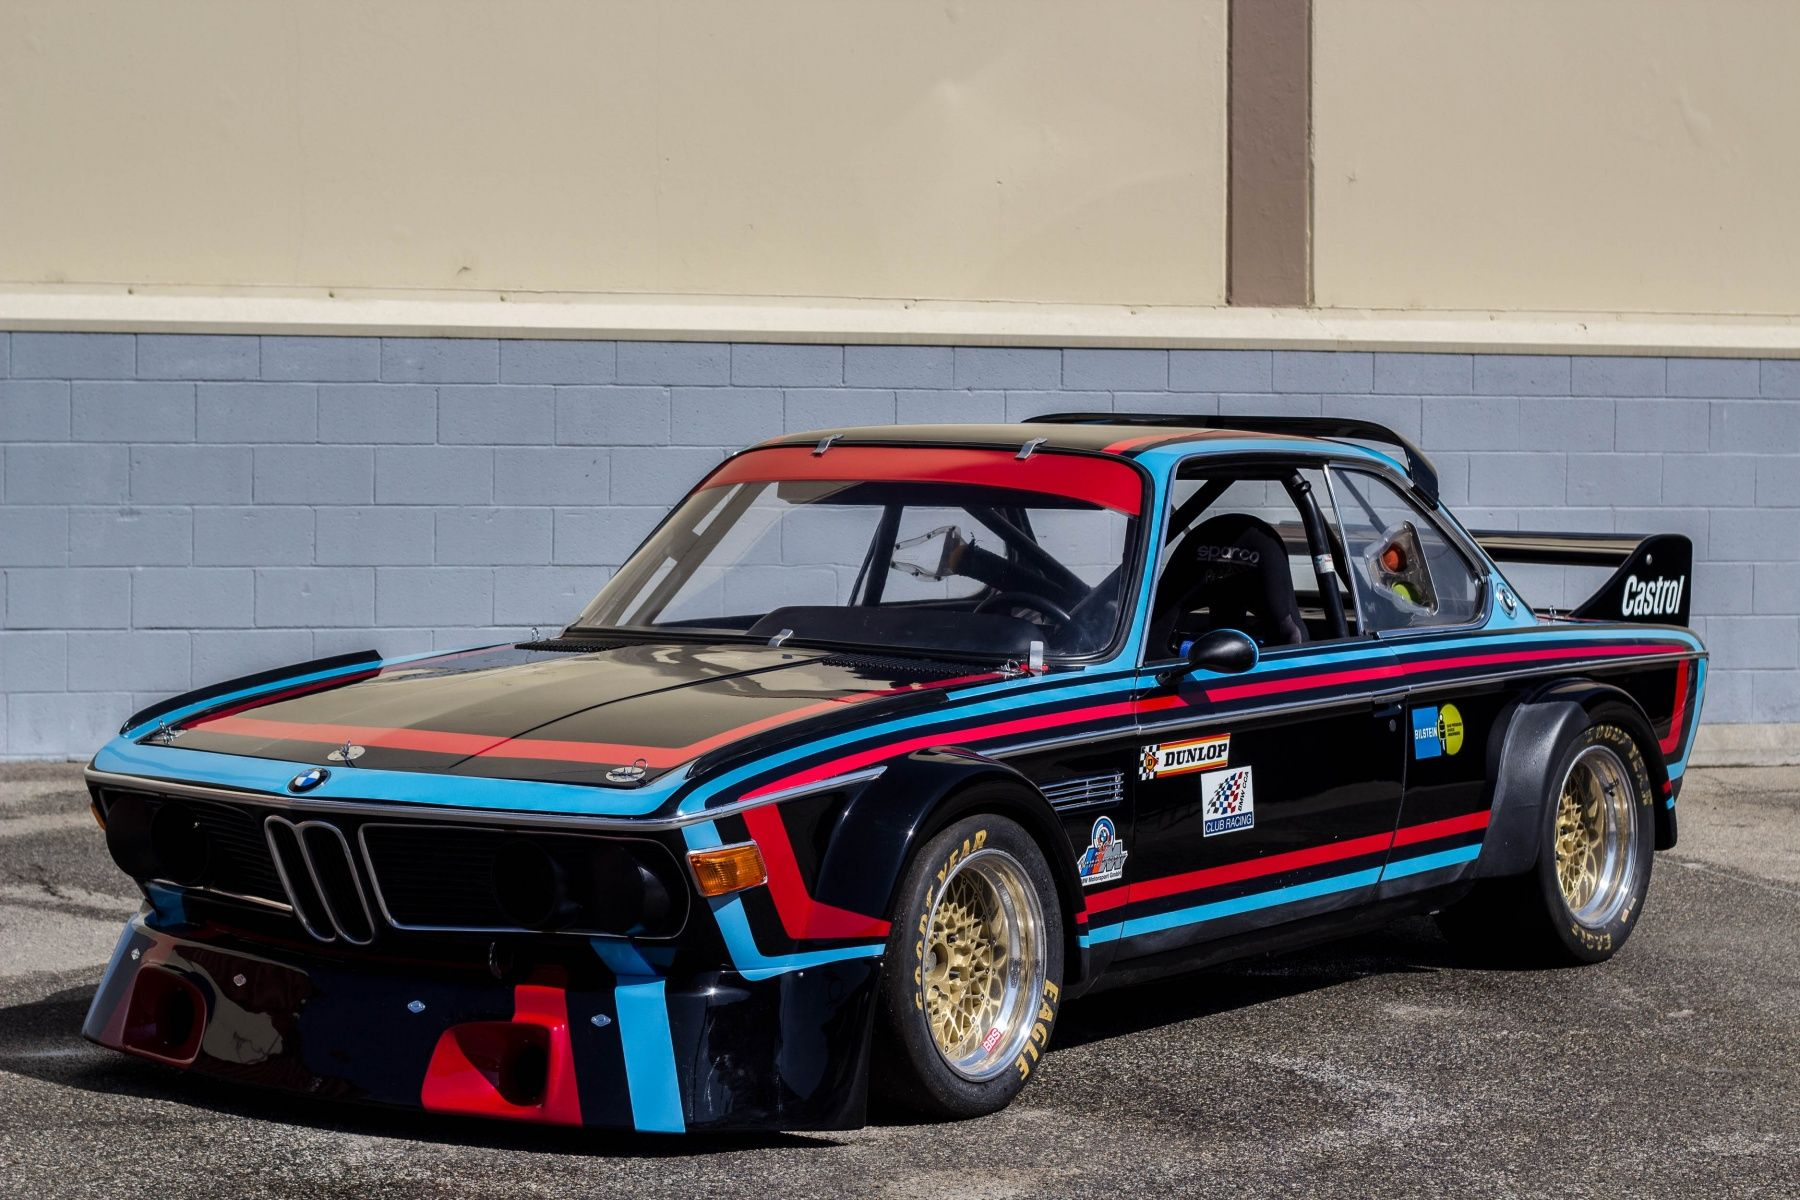 Bmw 3.0 Csl >> Adam Carolla S Bmw 3 0 Csl Is For Sale Adam Carolla Lists Car For Sale